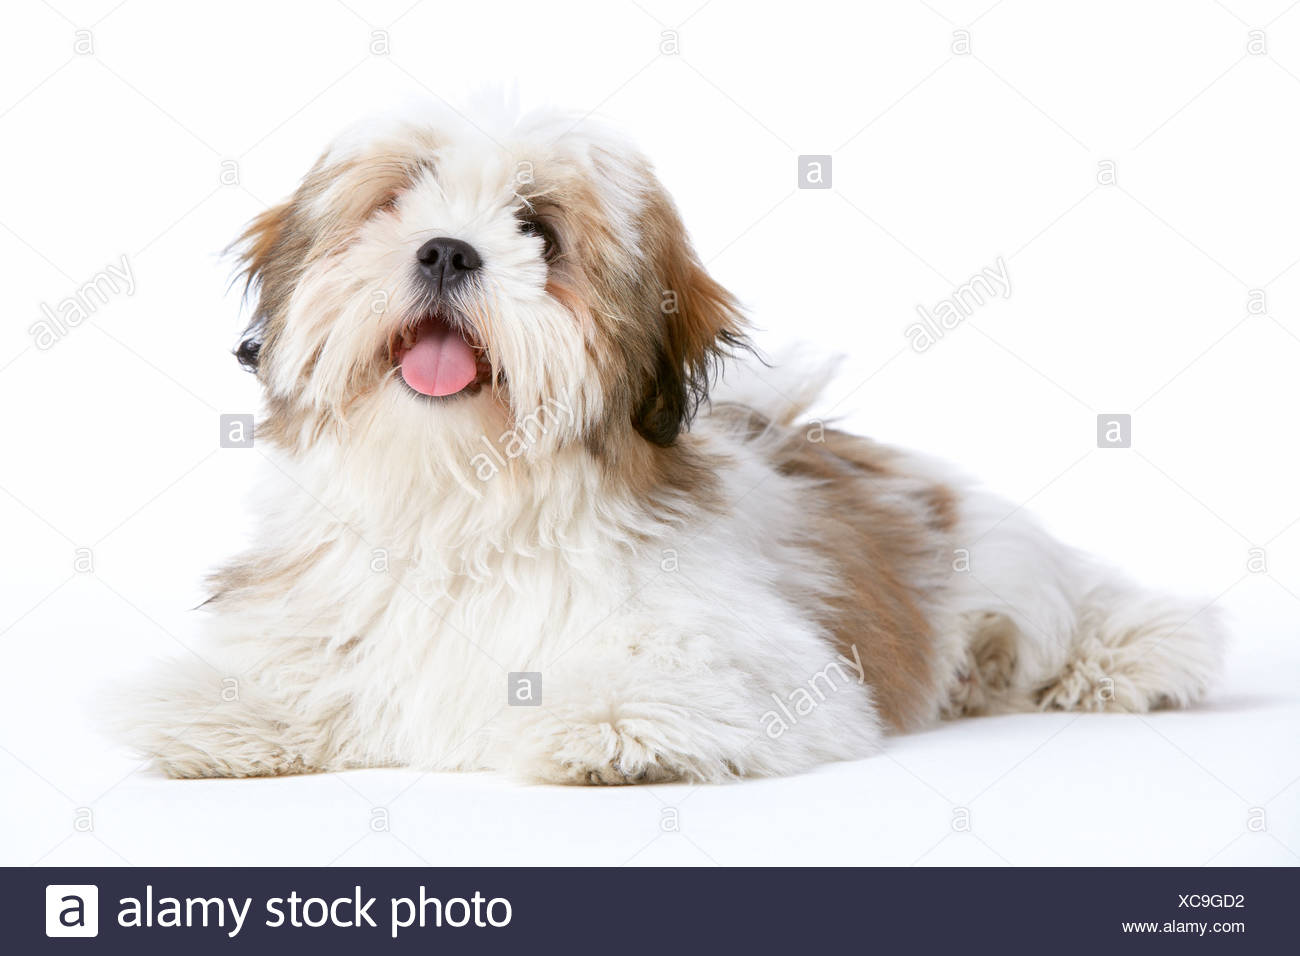 Lhasa Apso Dog Lying Down - Stock Image